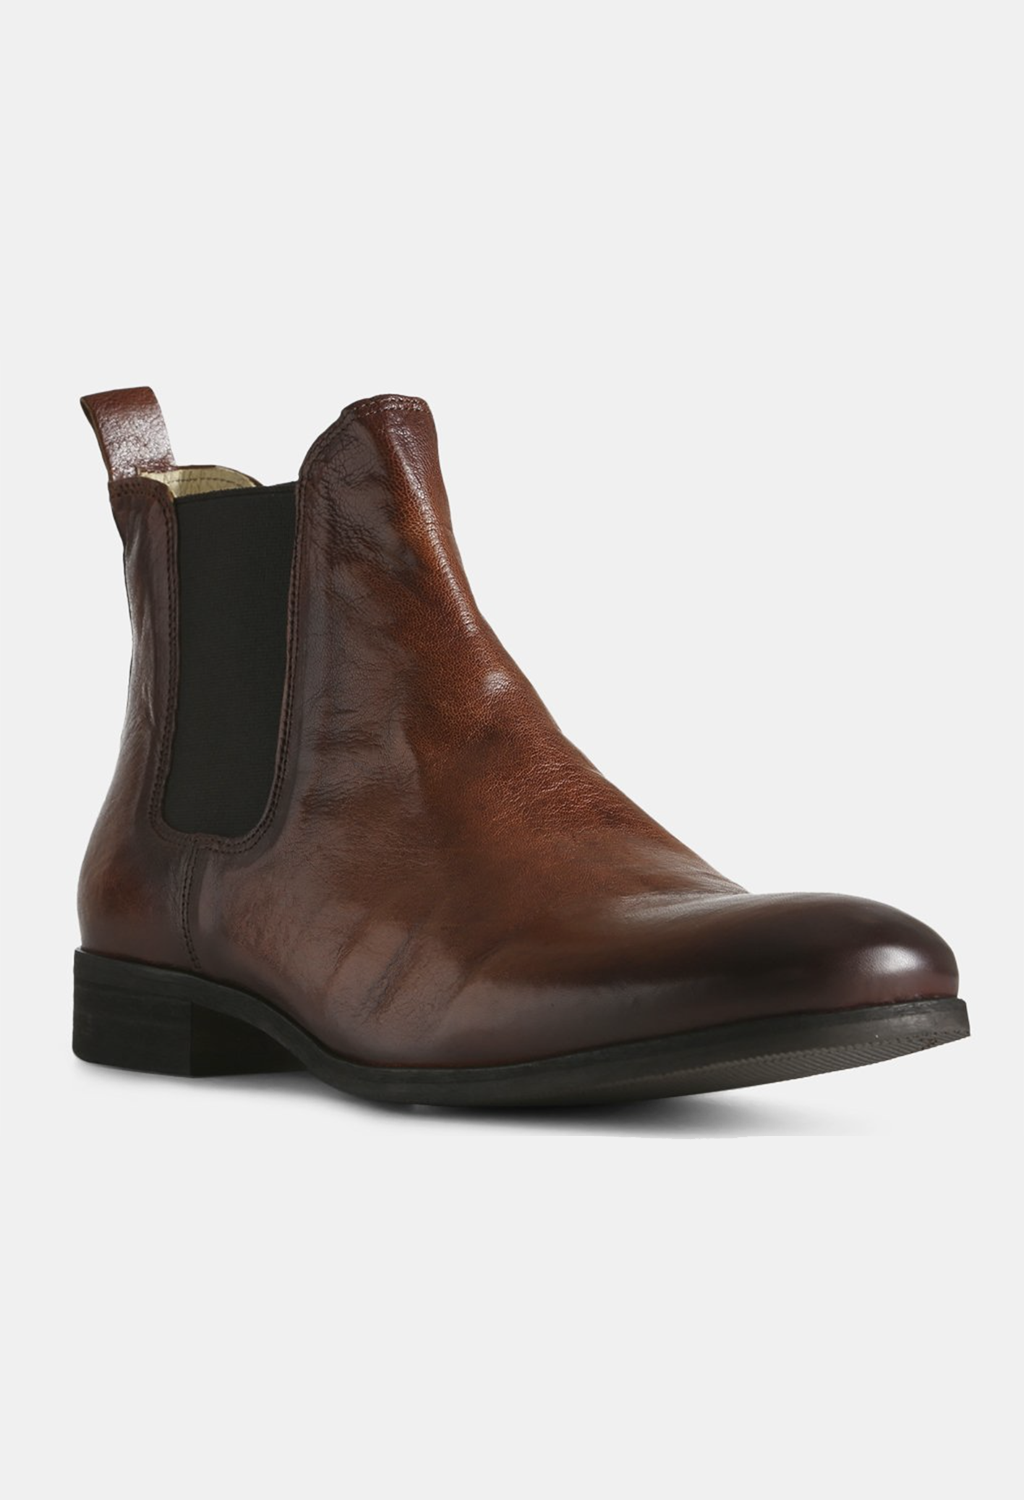 Arnie Brown Leather Pull-On Boot - RUST & Co.